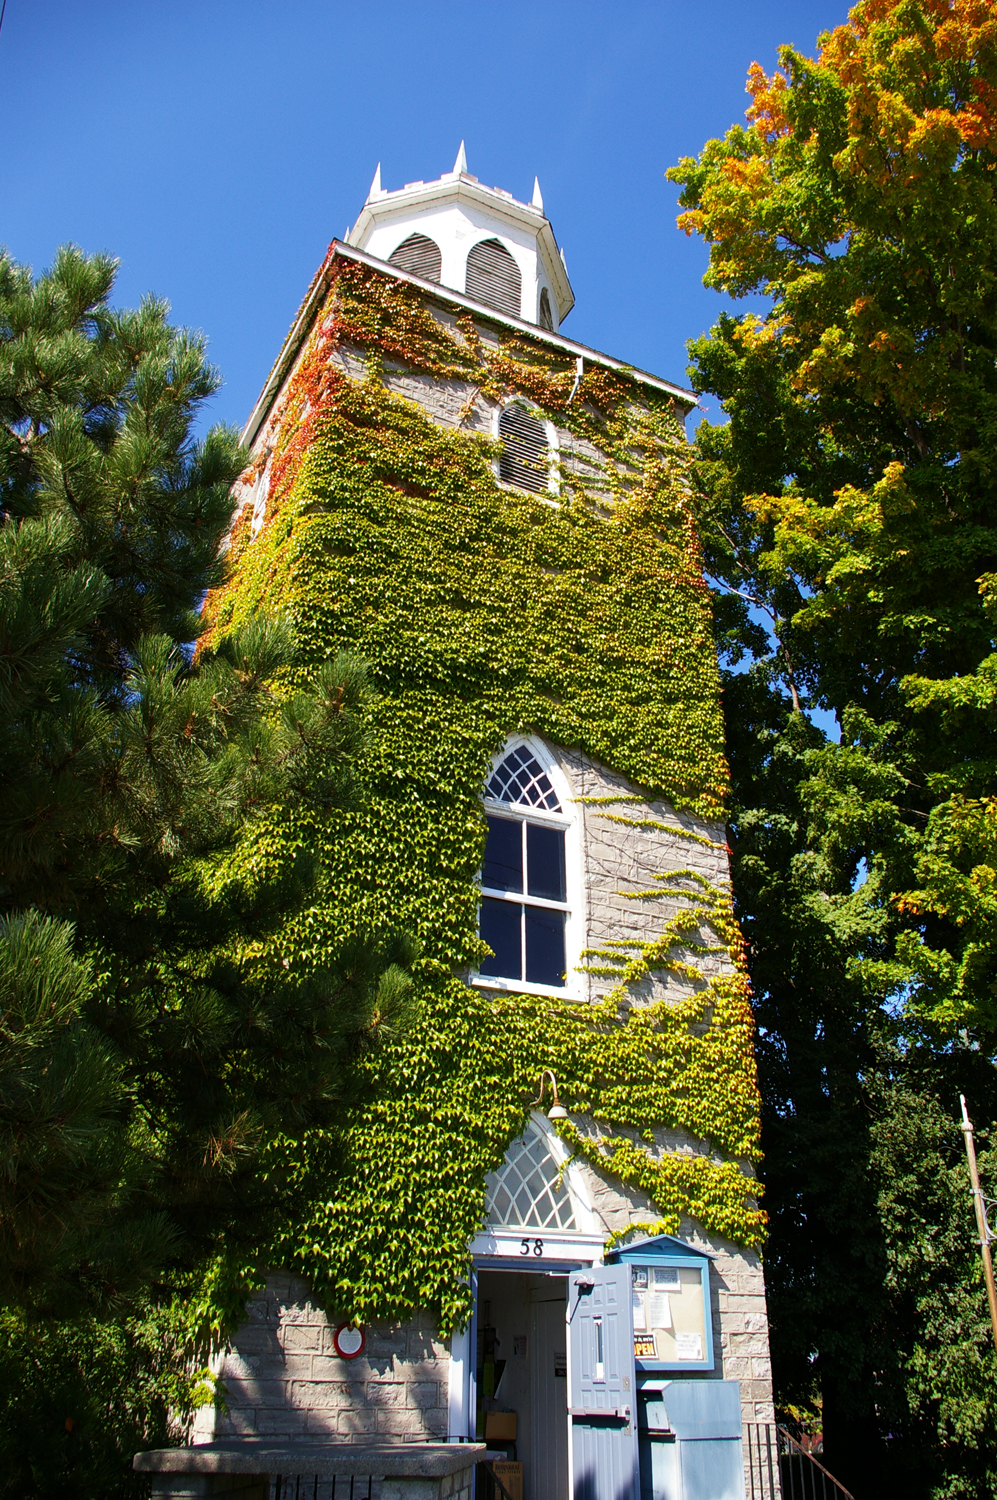 Holy Trinity Anglican Church, built in1847 in Consecon, Prince Edward County.  In 1978 it started its second life as a branch of the Public Library.